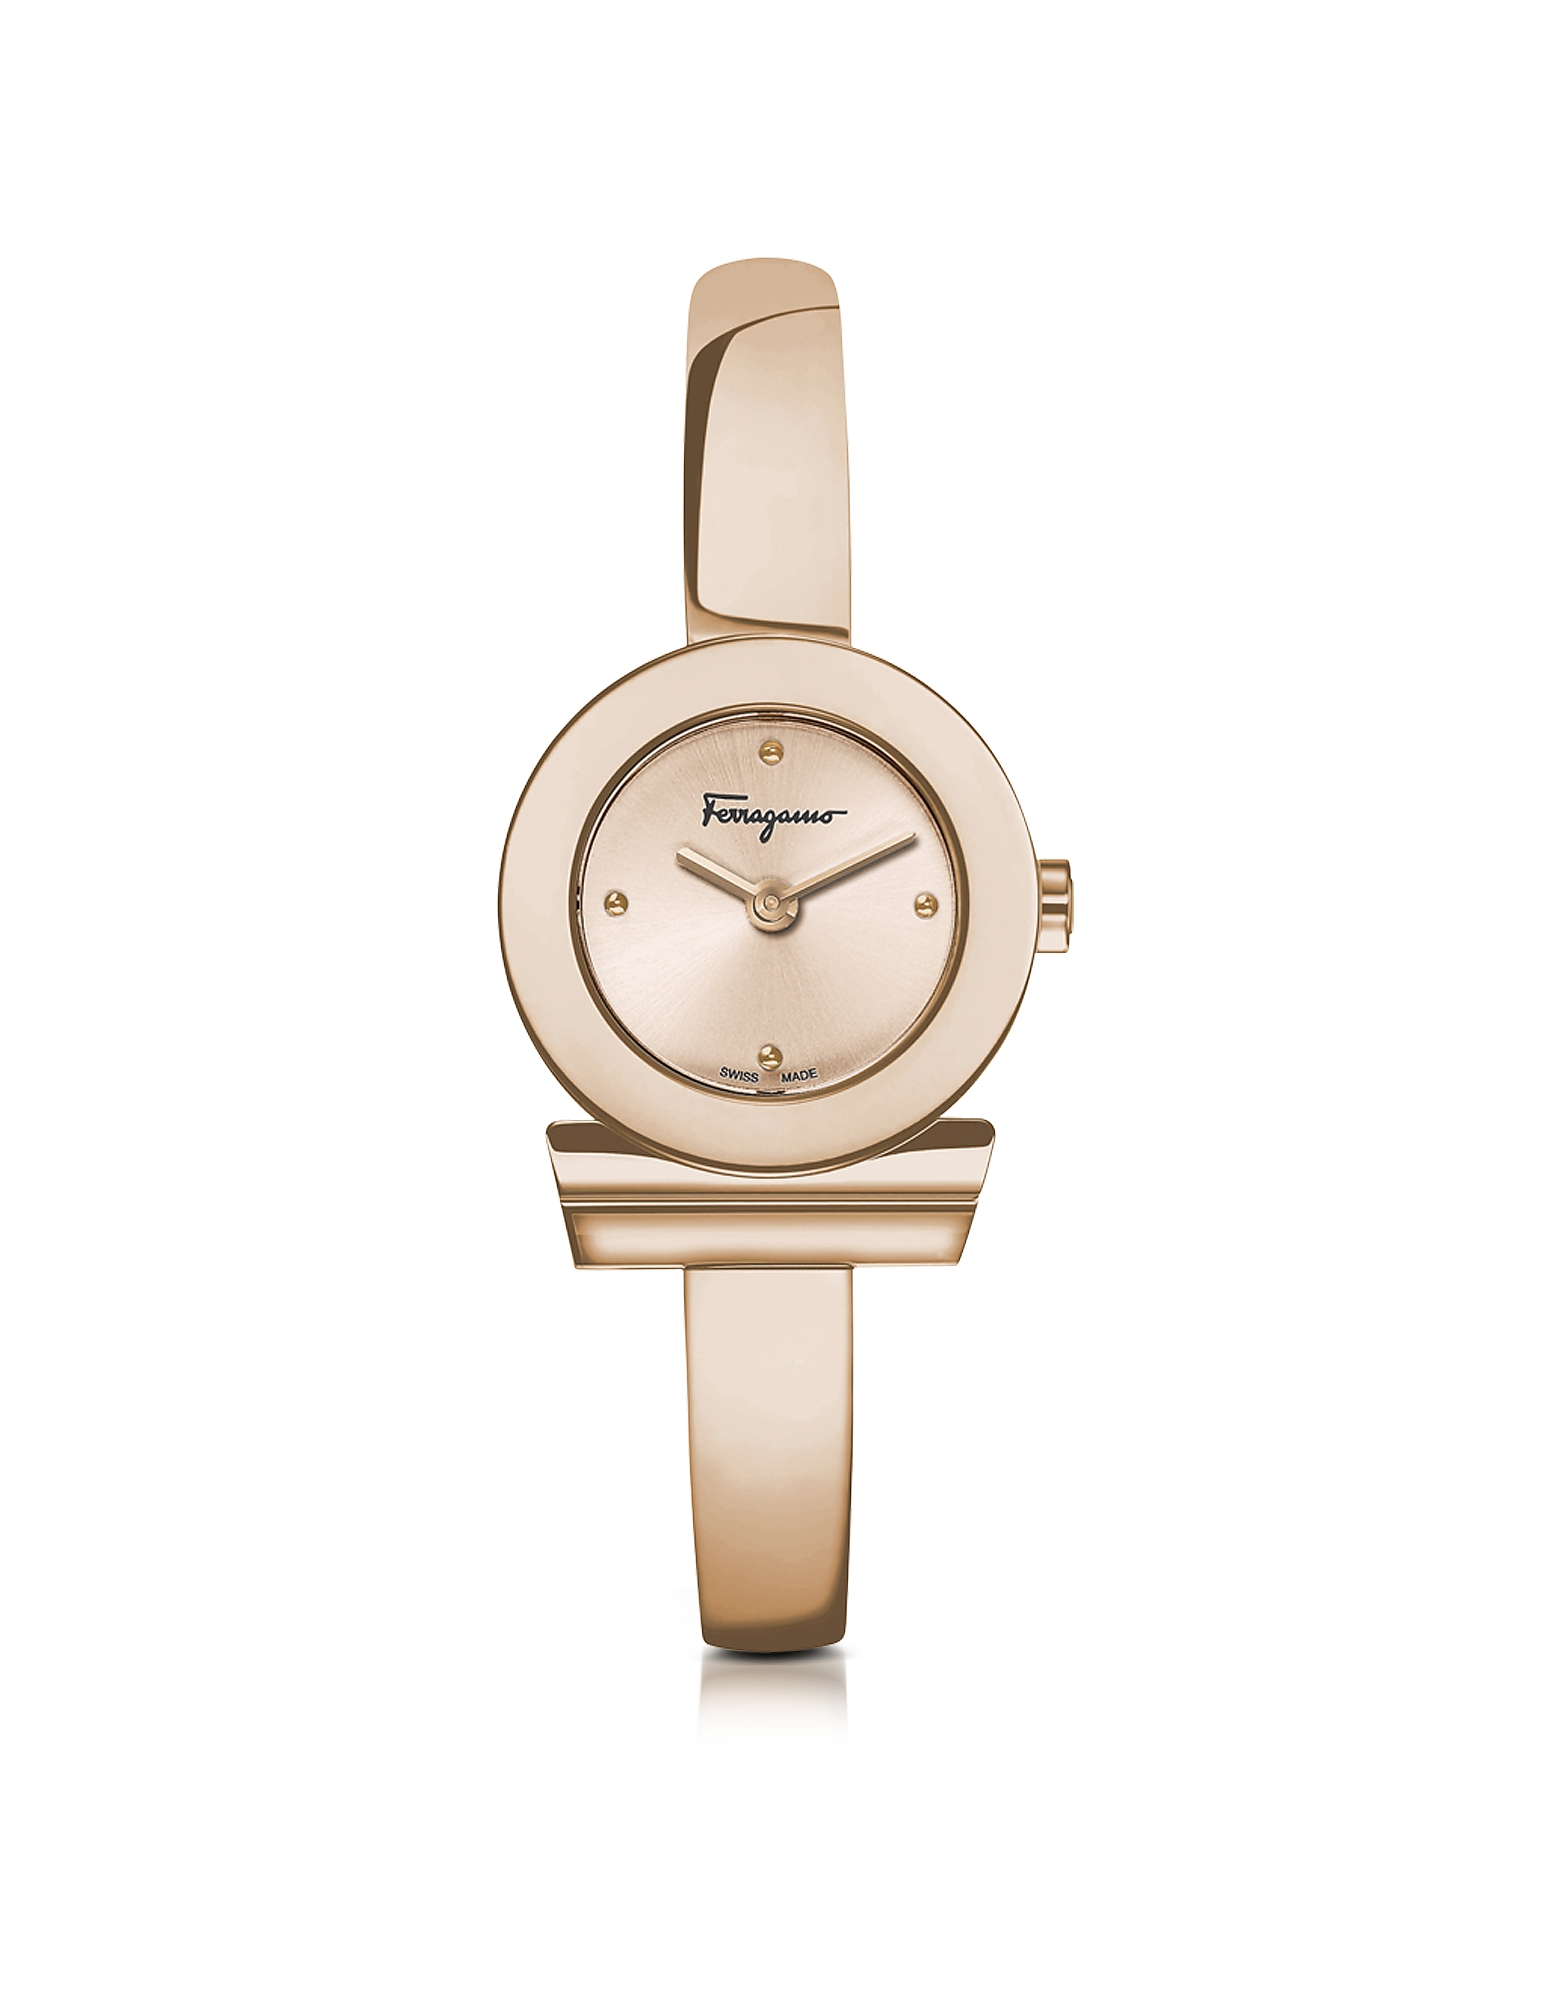 Salvatore Ferragamo Designer Women's Watches, Gancino Rose Gold IP Stainless Steel Women's Watch w/S